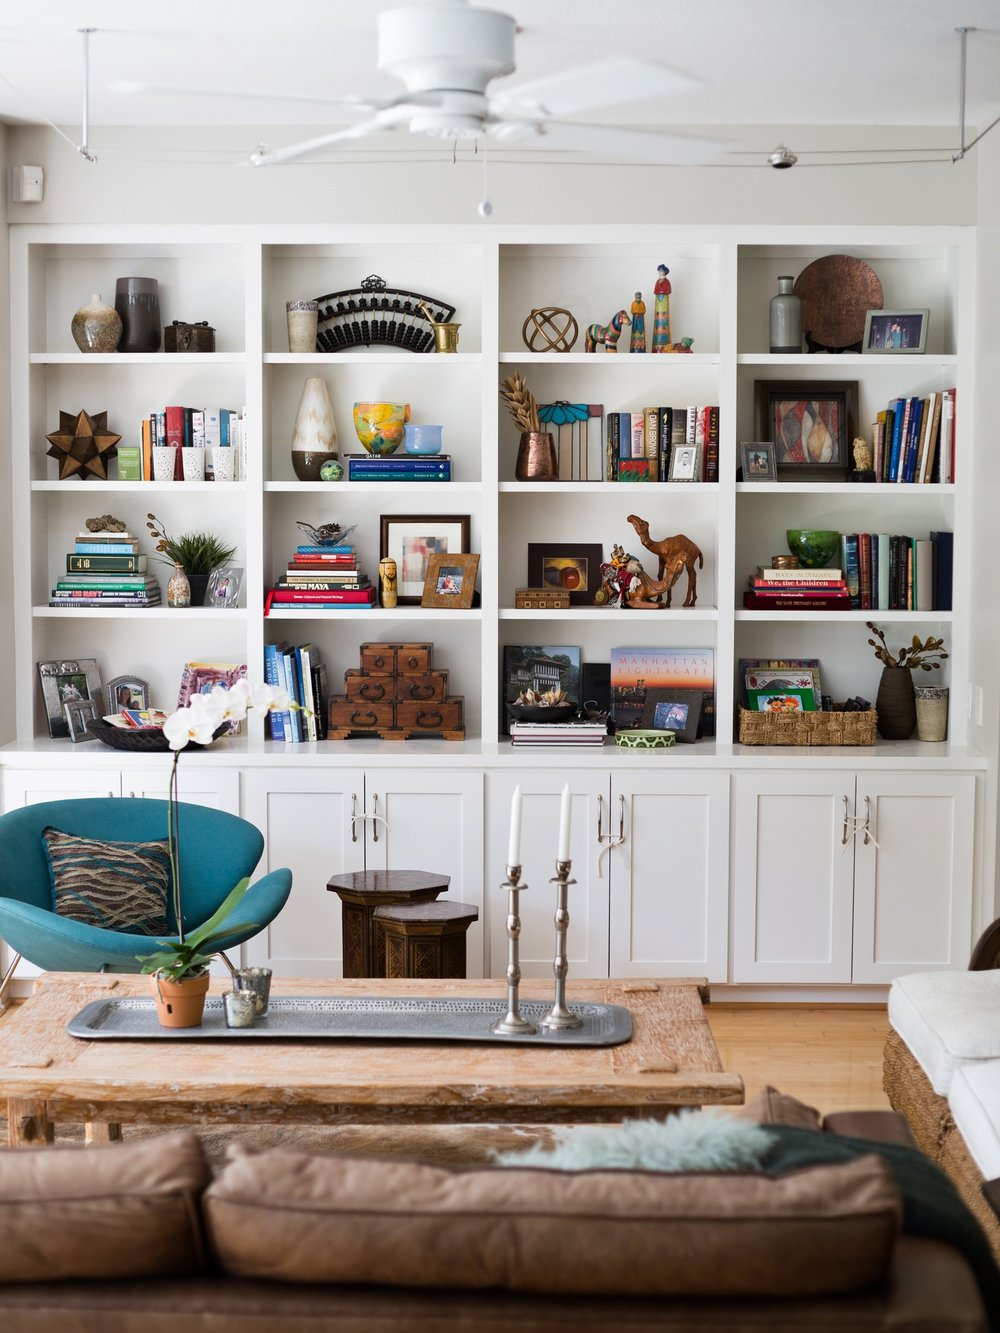 After - Bookshelf styling, Carla Aston - Designer, Tori Aston - Photographer